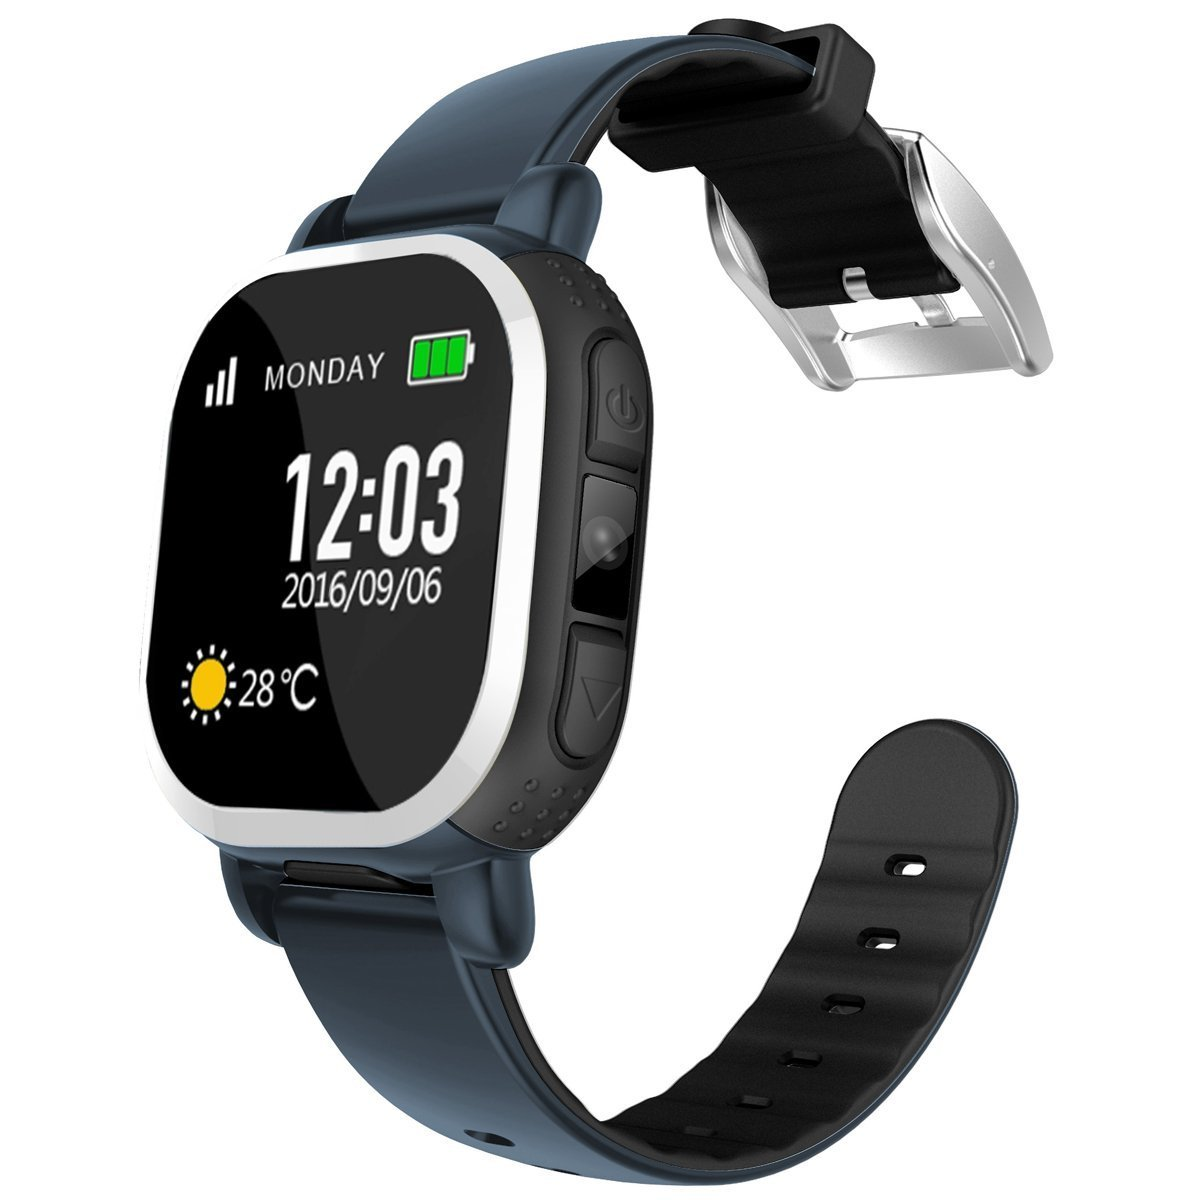 Tencent Qq Watch Gps Safe For Children Android Ios Kids Smart Watch Girls Boys Security Watch With Camera Sim Calls Anti Lost Sos Locator Activity Tracker Smart Bracelet For Girls Boys Pq708 Deepblue